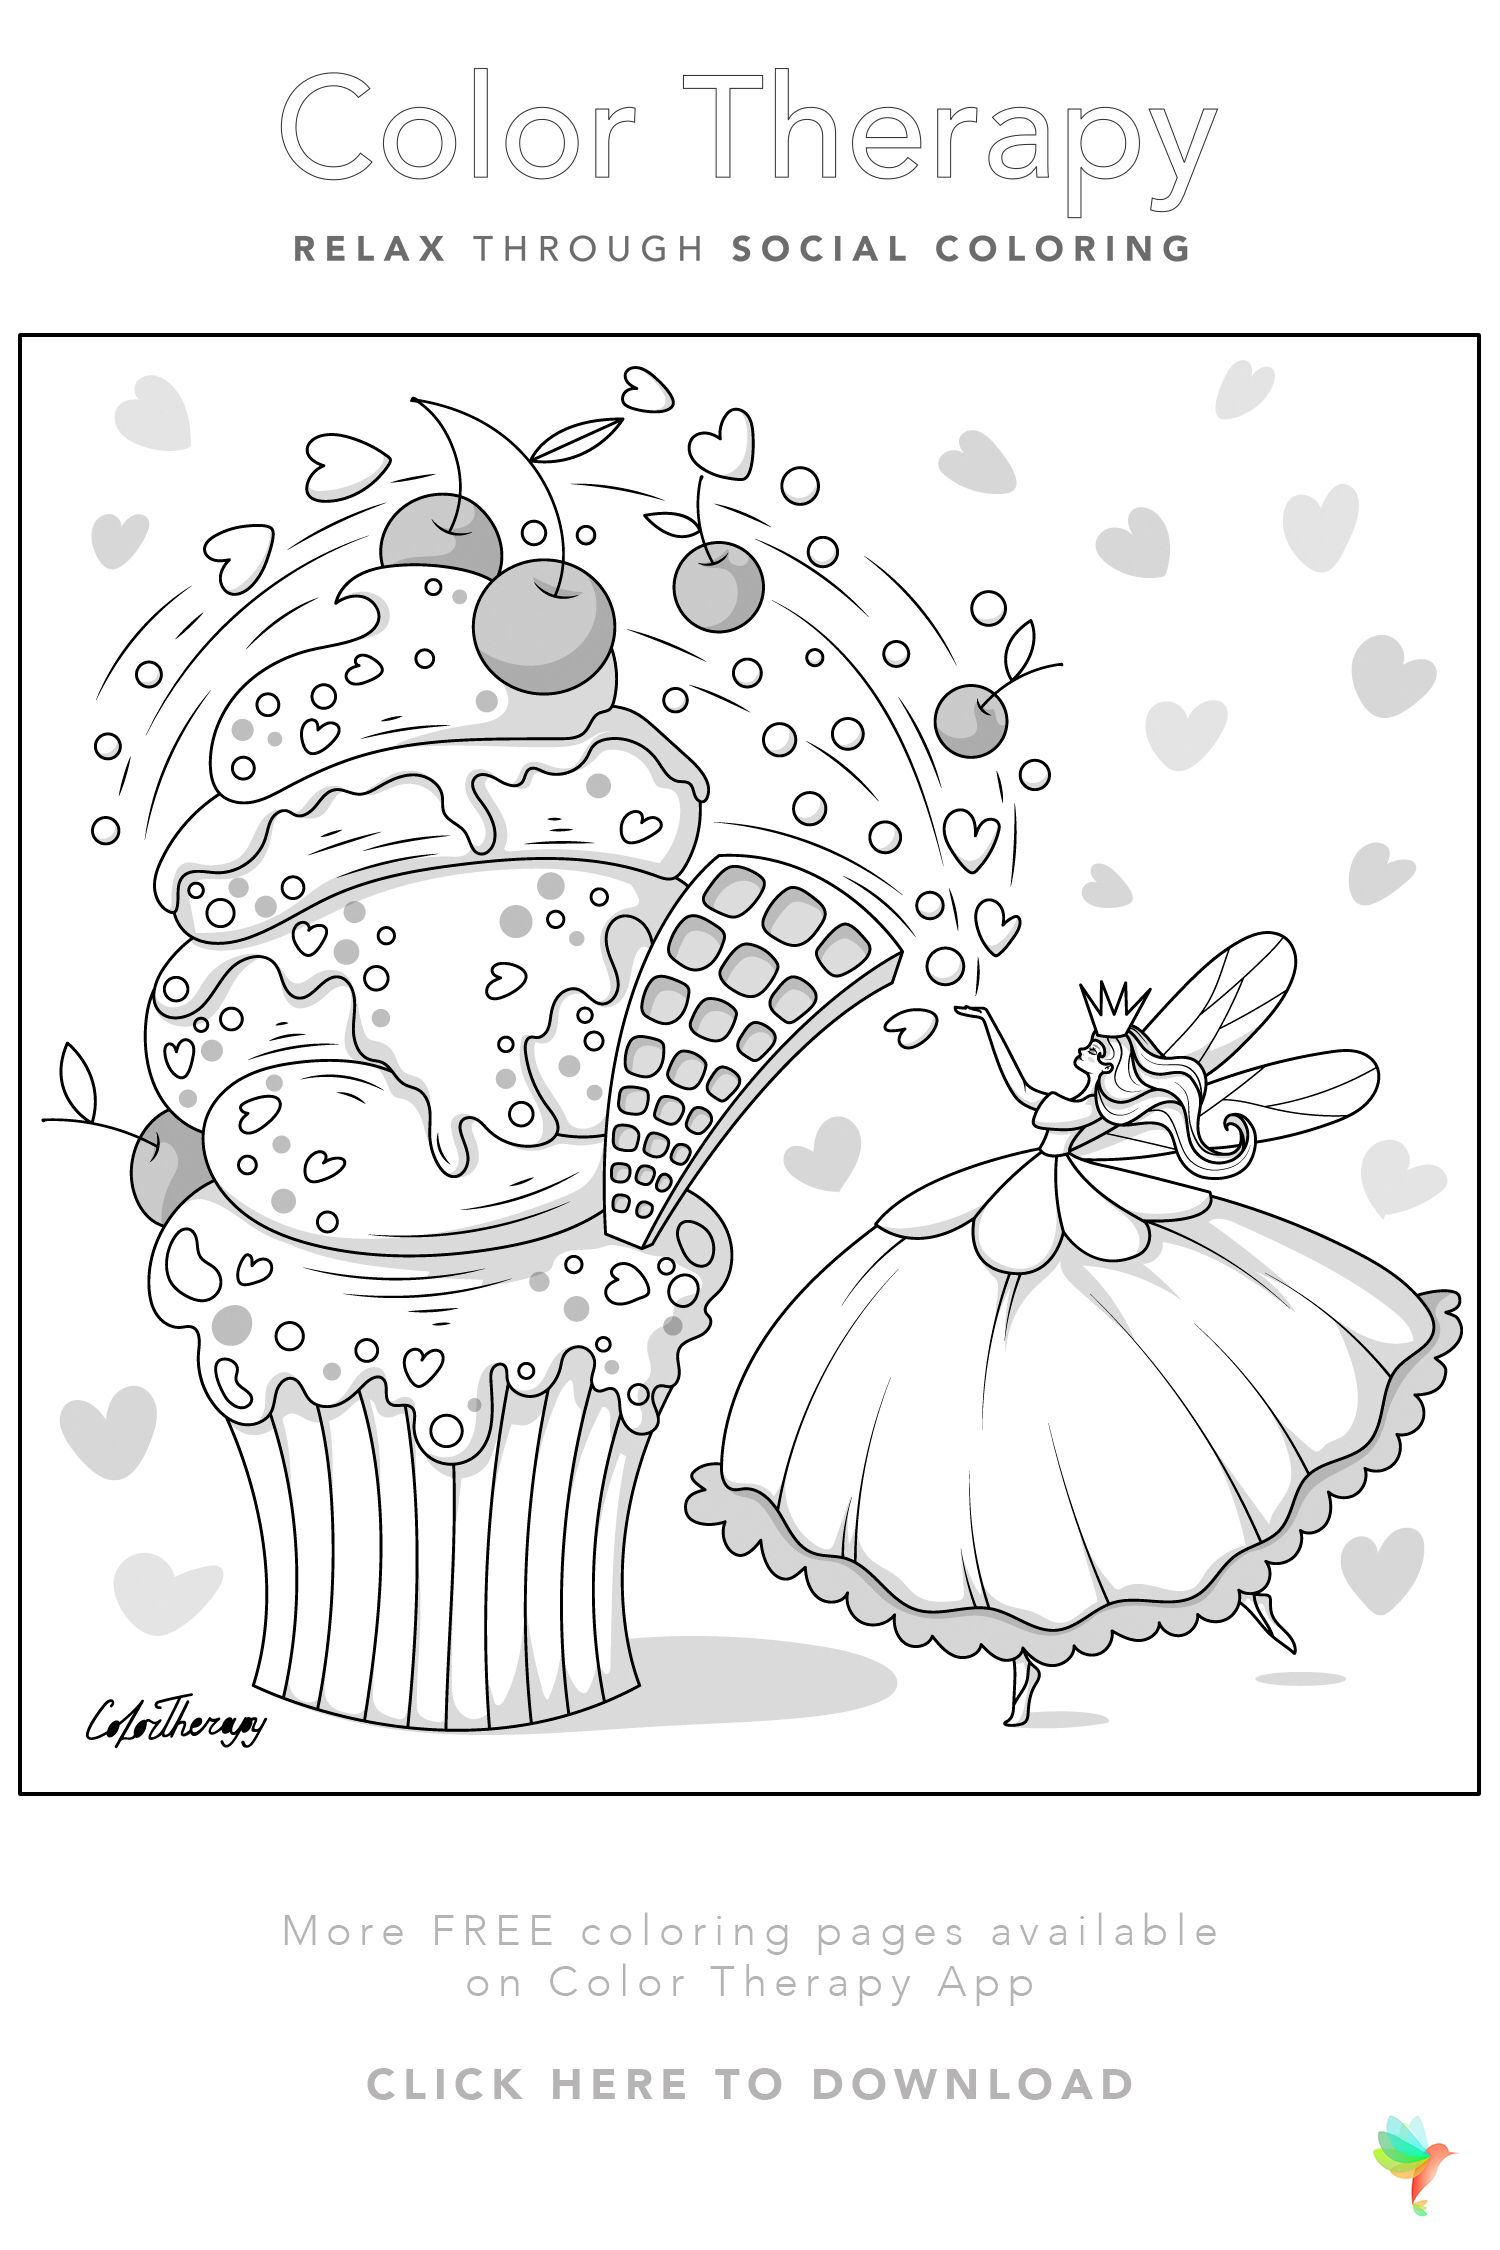 Color Therapy Gift Of The Day Free Coloring Template Color Therapy Free Coloring Pages Coloring Pages